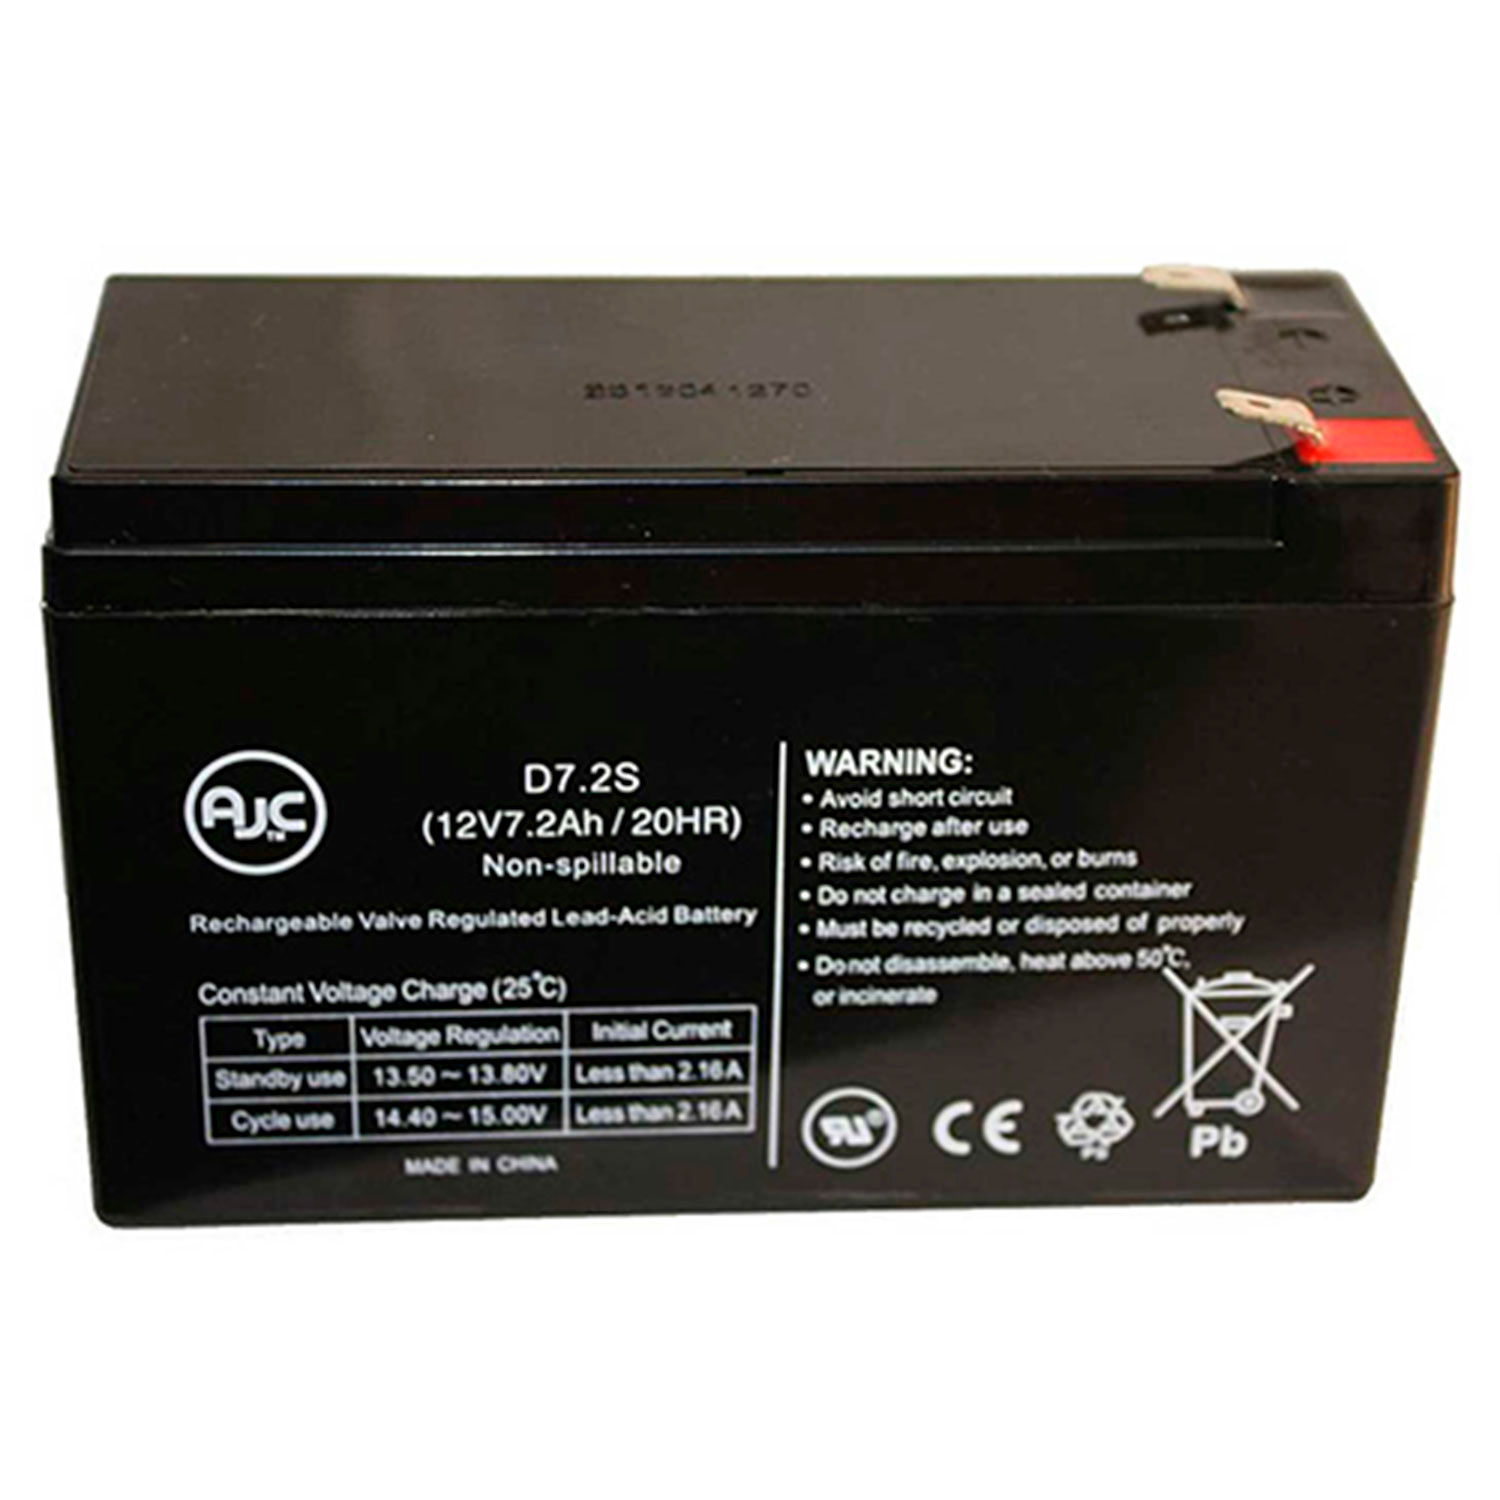 Portalac PX12072-HG 12V 7Ah Sealed Lead Acid Battery This is an AJC Brand Replacement